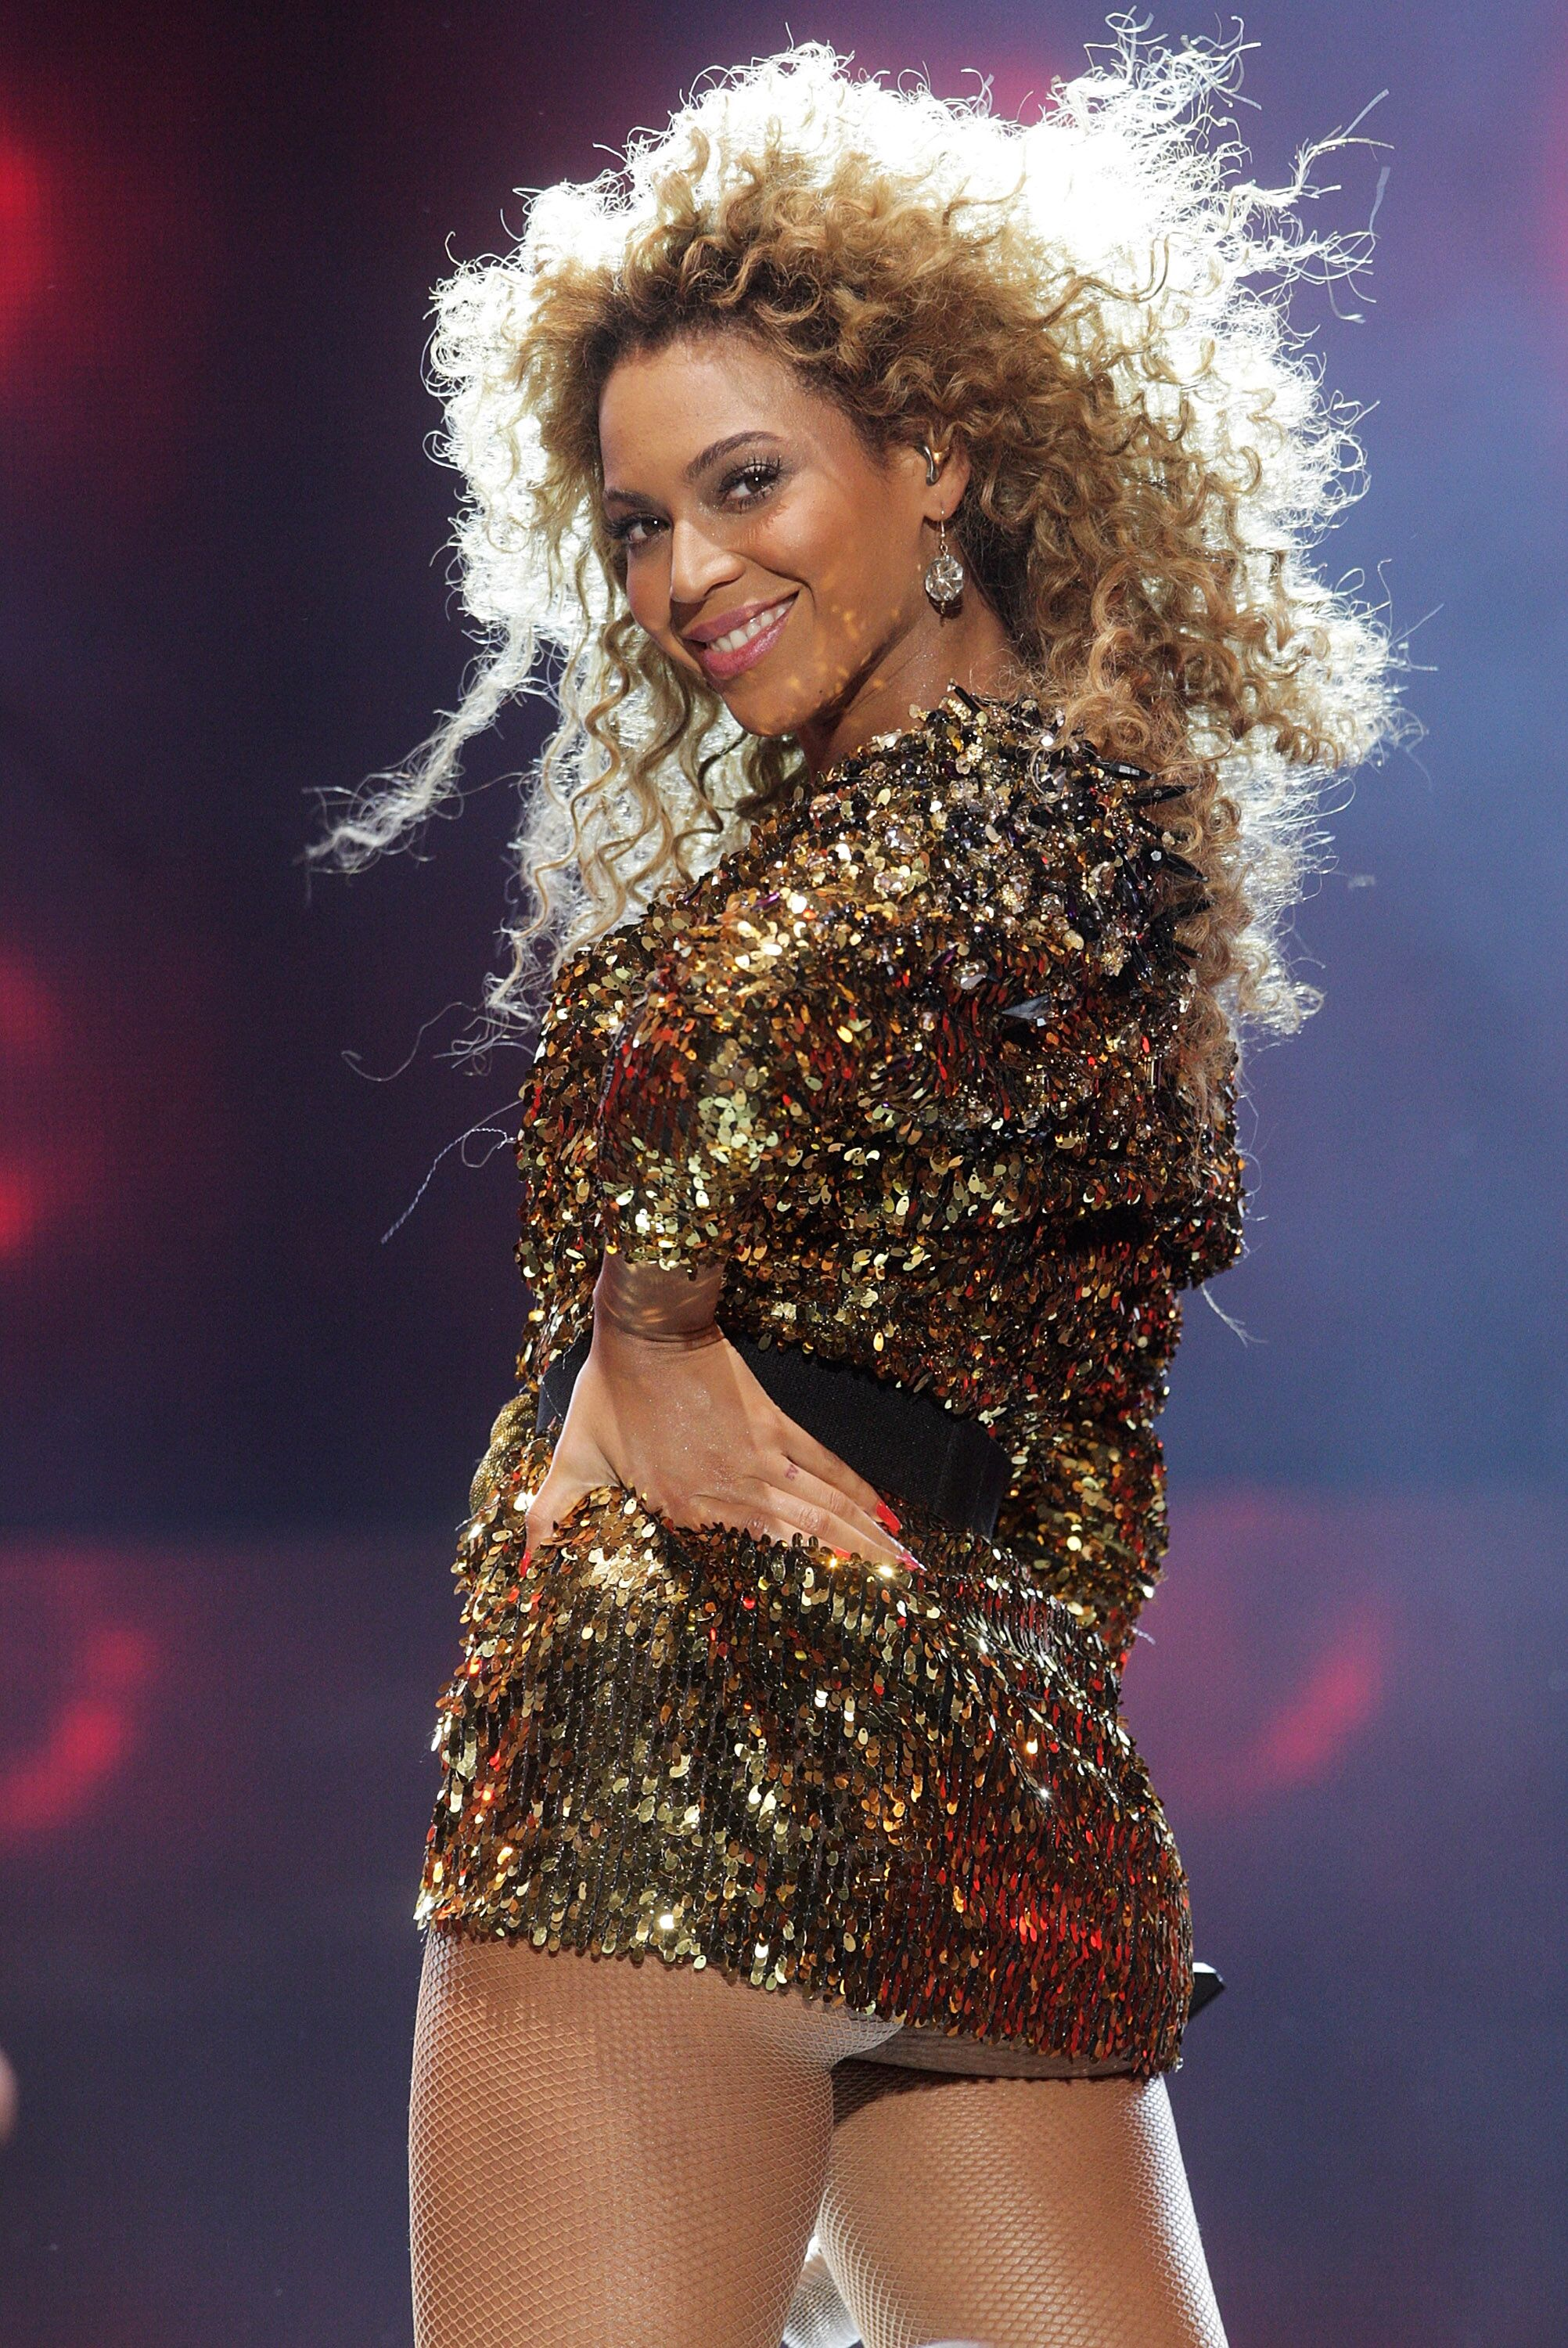 Beyoncé Knowles performs at the The Glastonbury Festival / Source: Getty Images